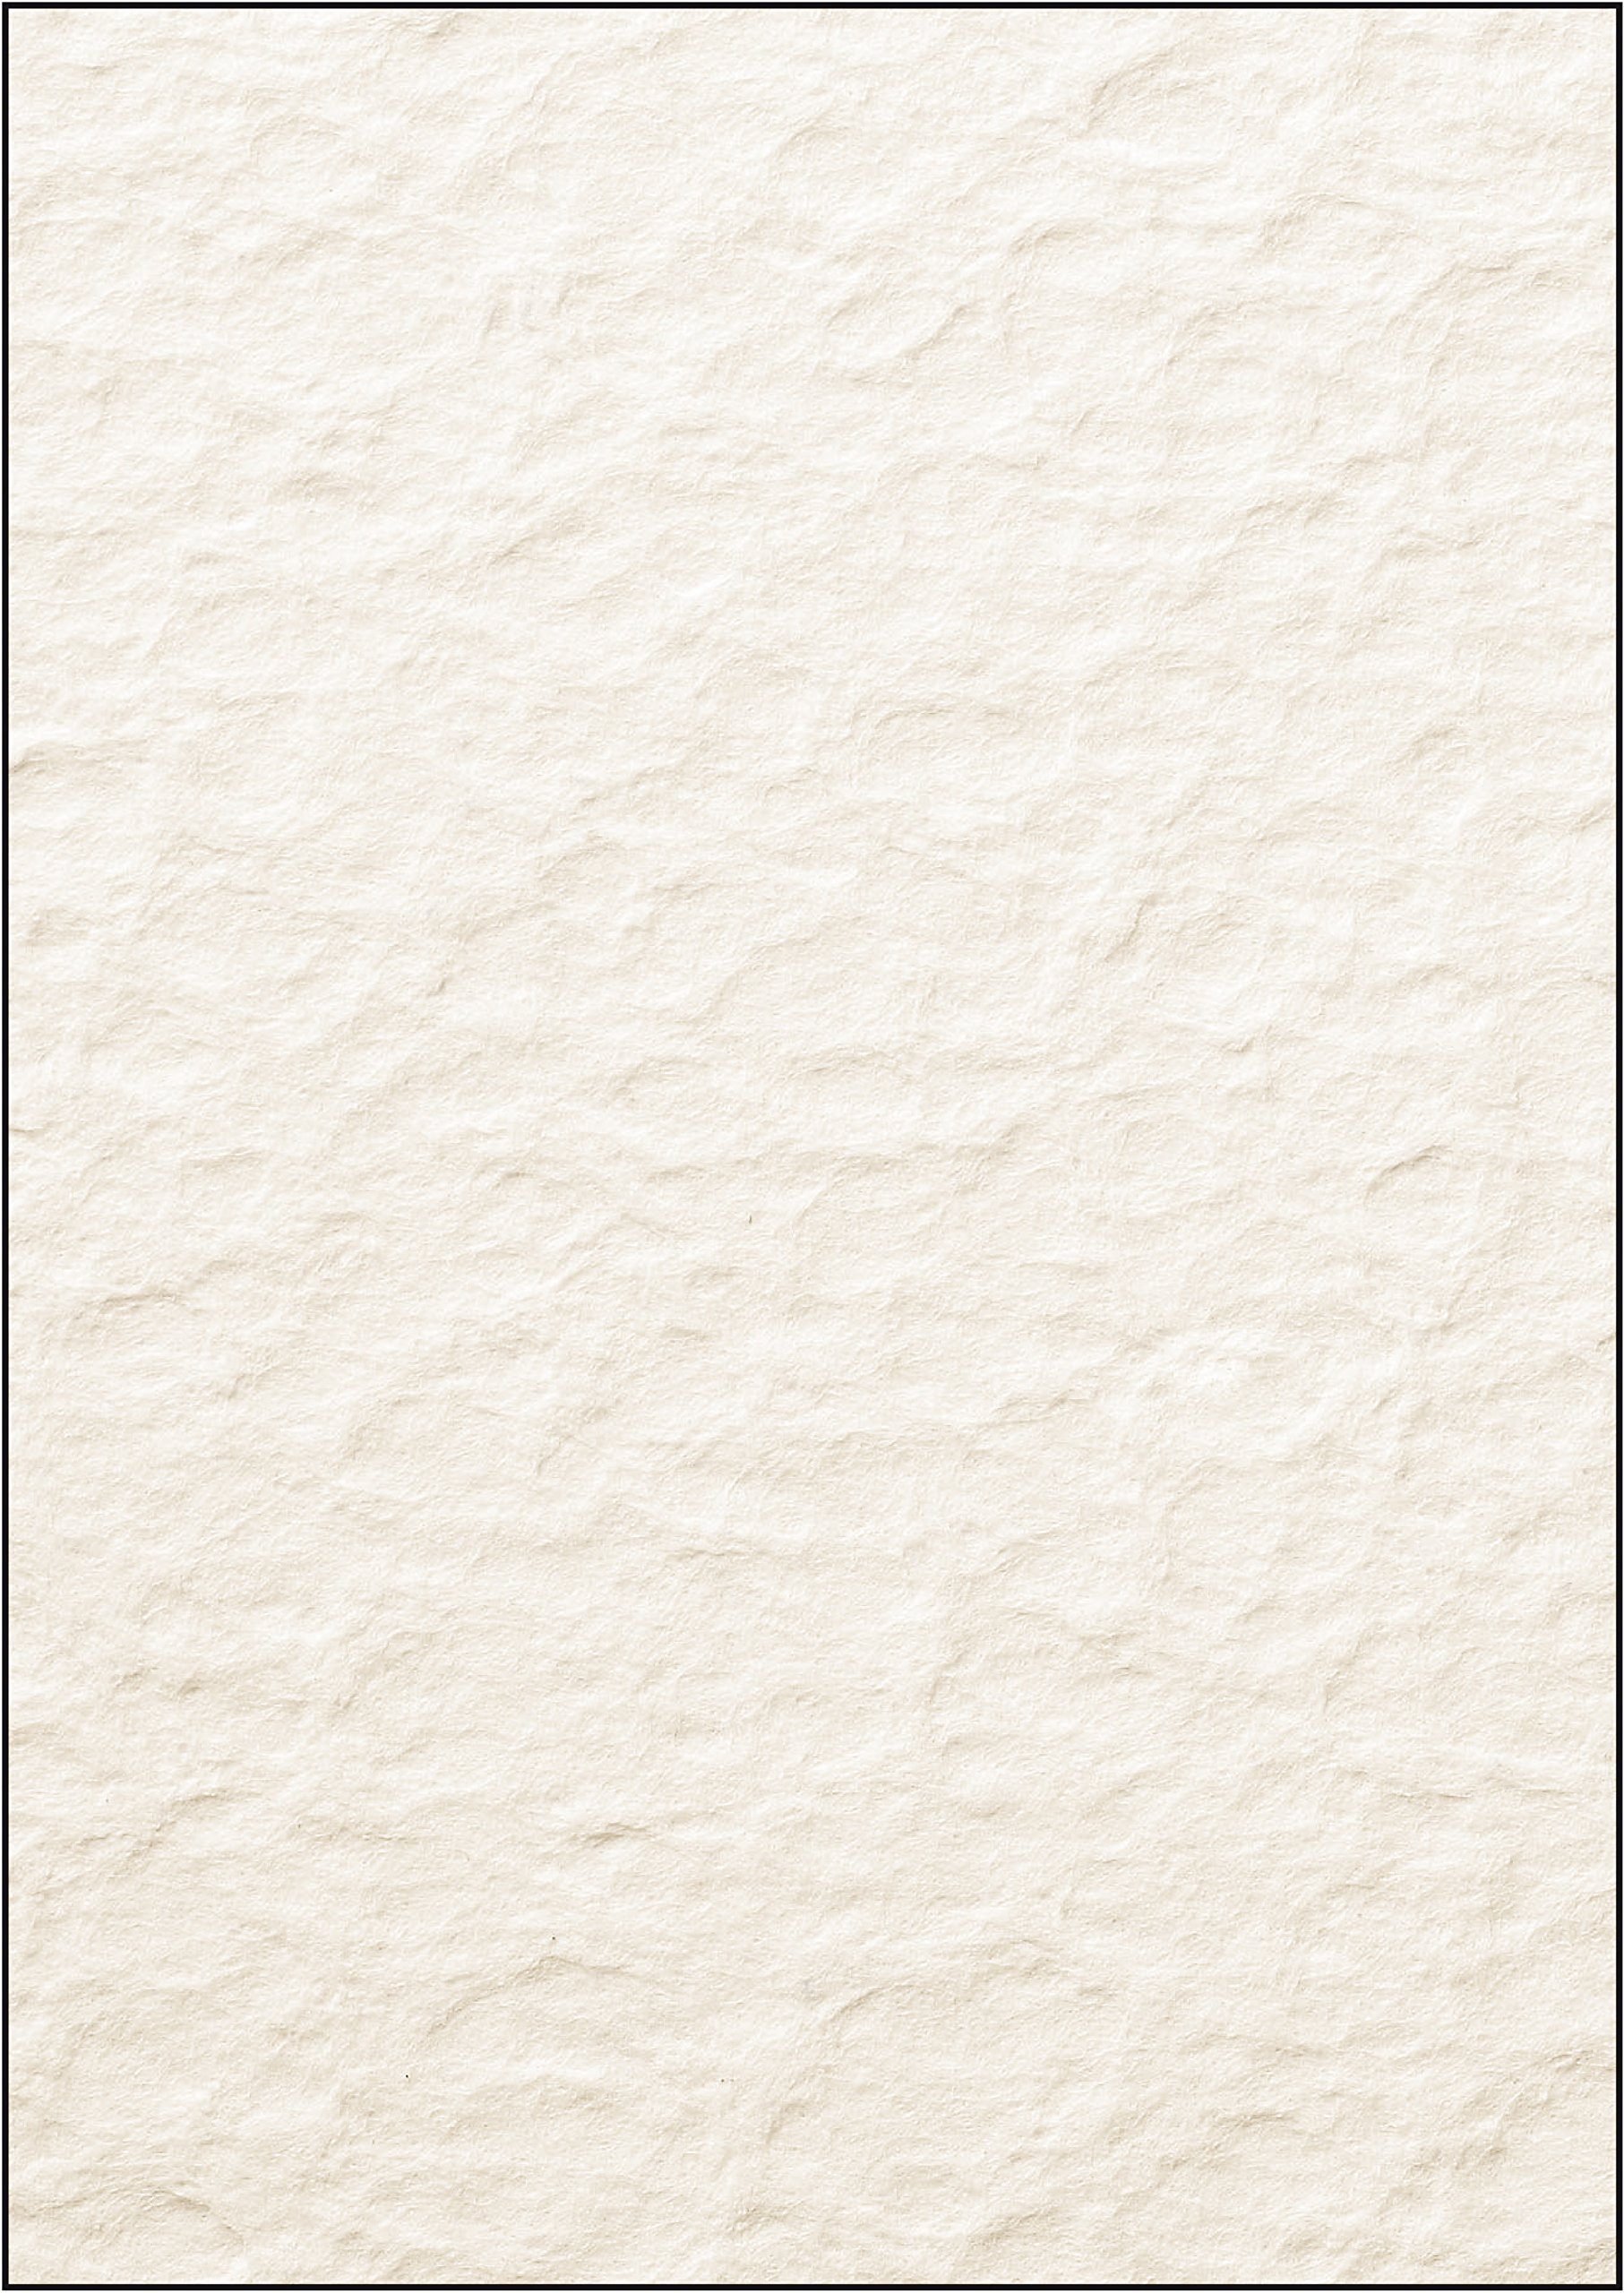 Sigel DP244 A4 200 GSM''Papyra'' Motif Textured Double Sided Writing Paper (Pack of 50 Sheets) by Sigel